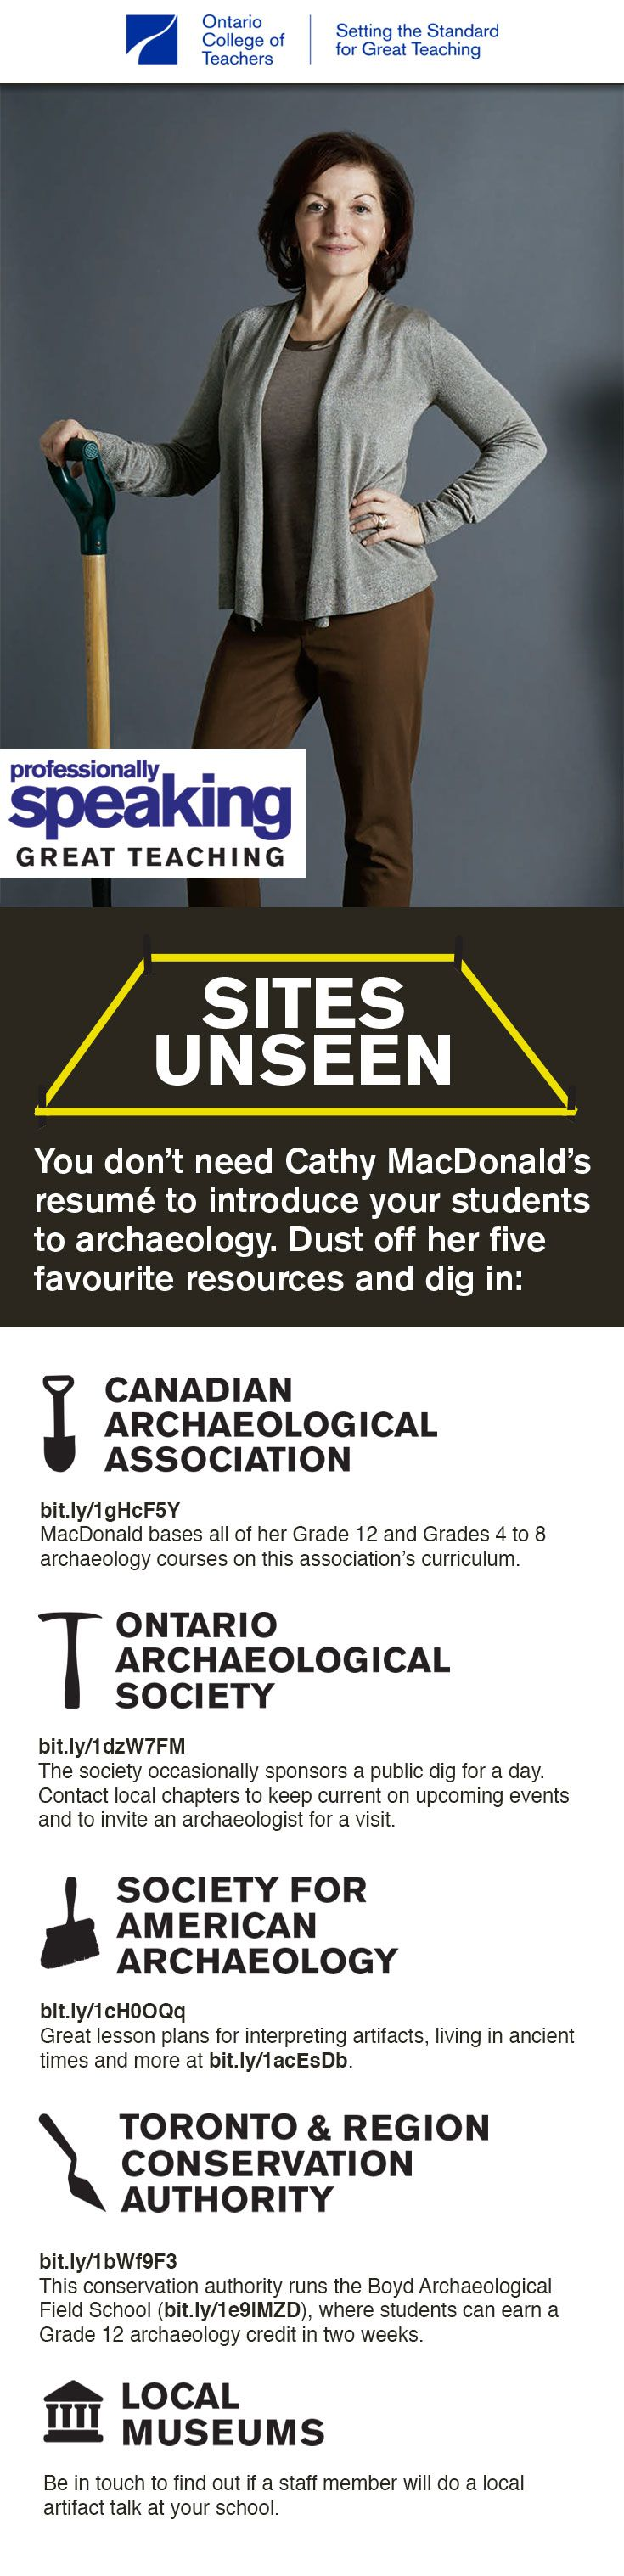 Dust off these five favourite resources and introduce your students to #archaeology. #education #educational #Canadian #archaeological #lessonplans #lessonplan #classroomideas #classroomplans